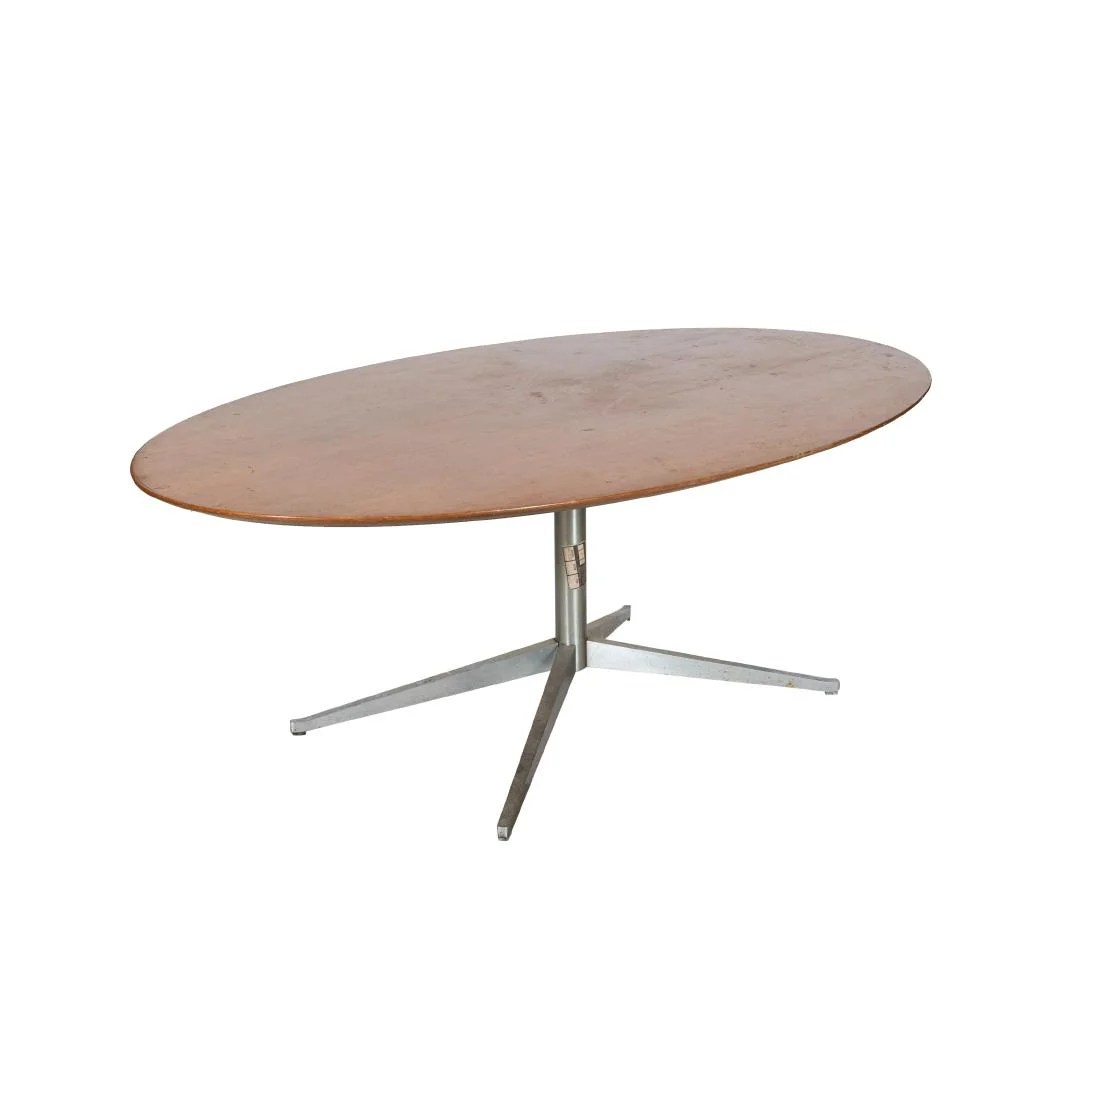 Knoll Table Florence Knoll Knoll Conference Table On Liveauctioneers